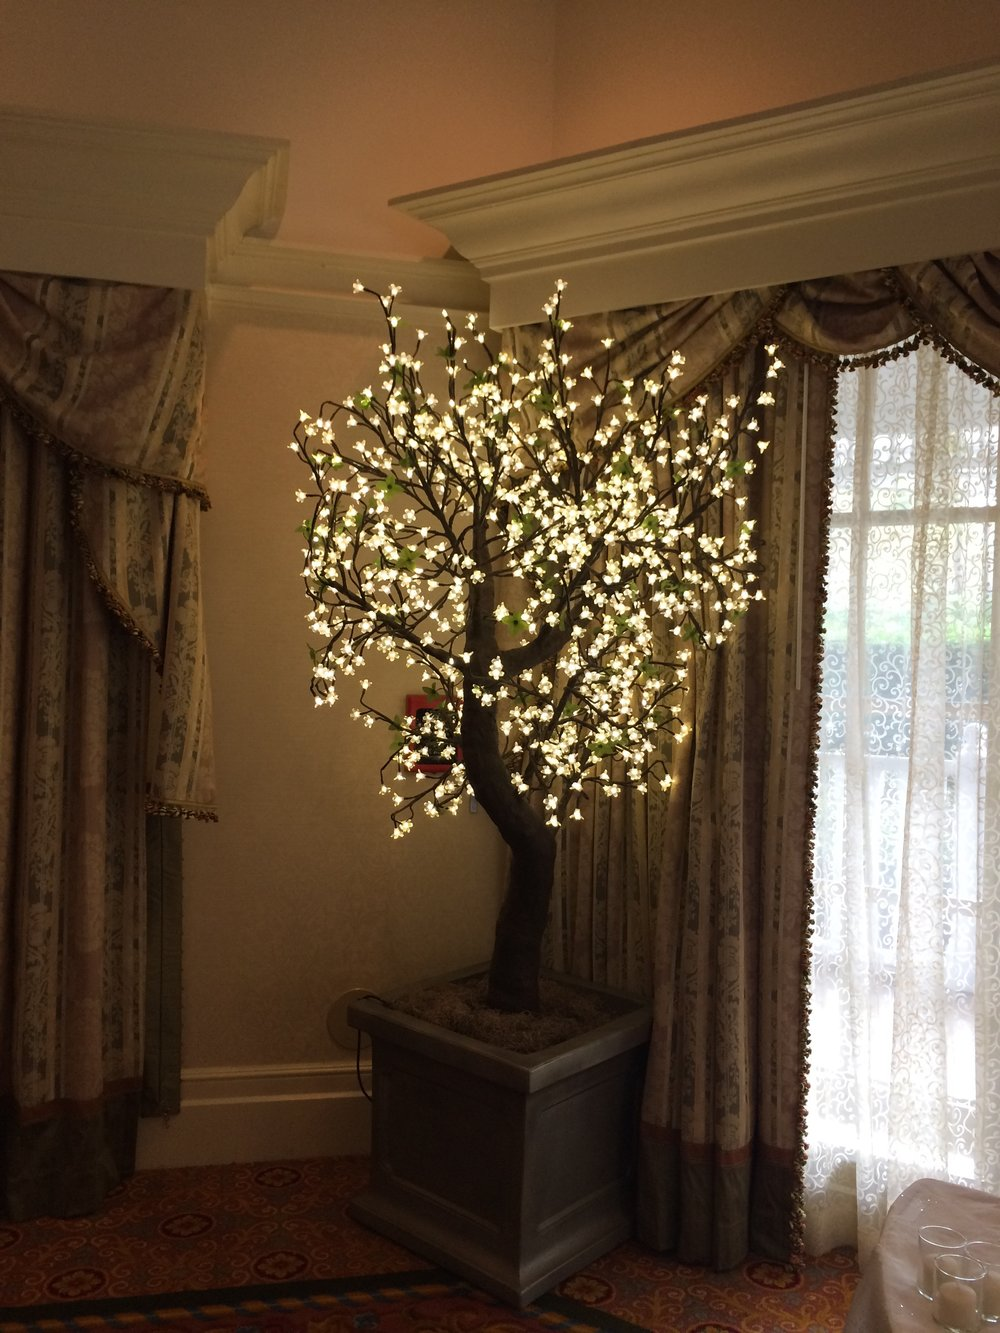 Also, sign me up for one of these twinkle trees! So pretty!